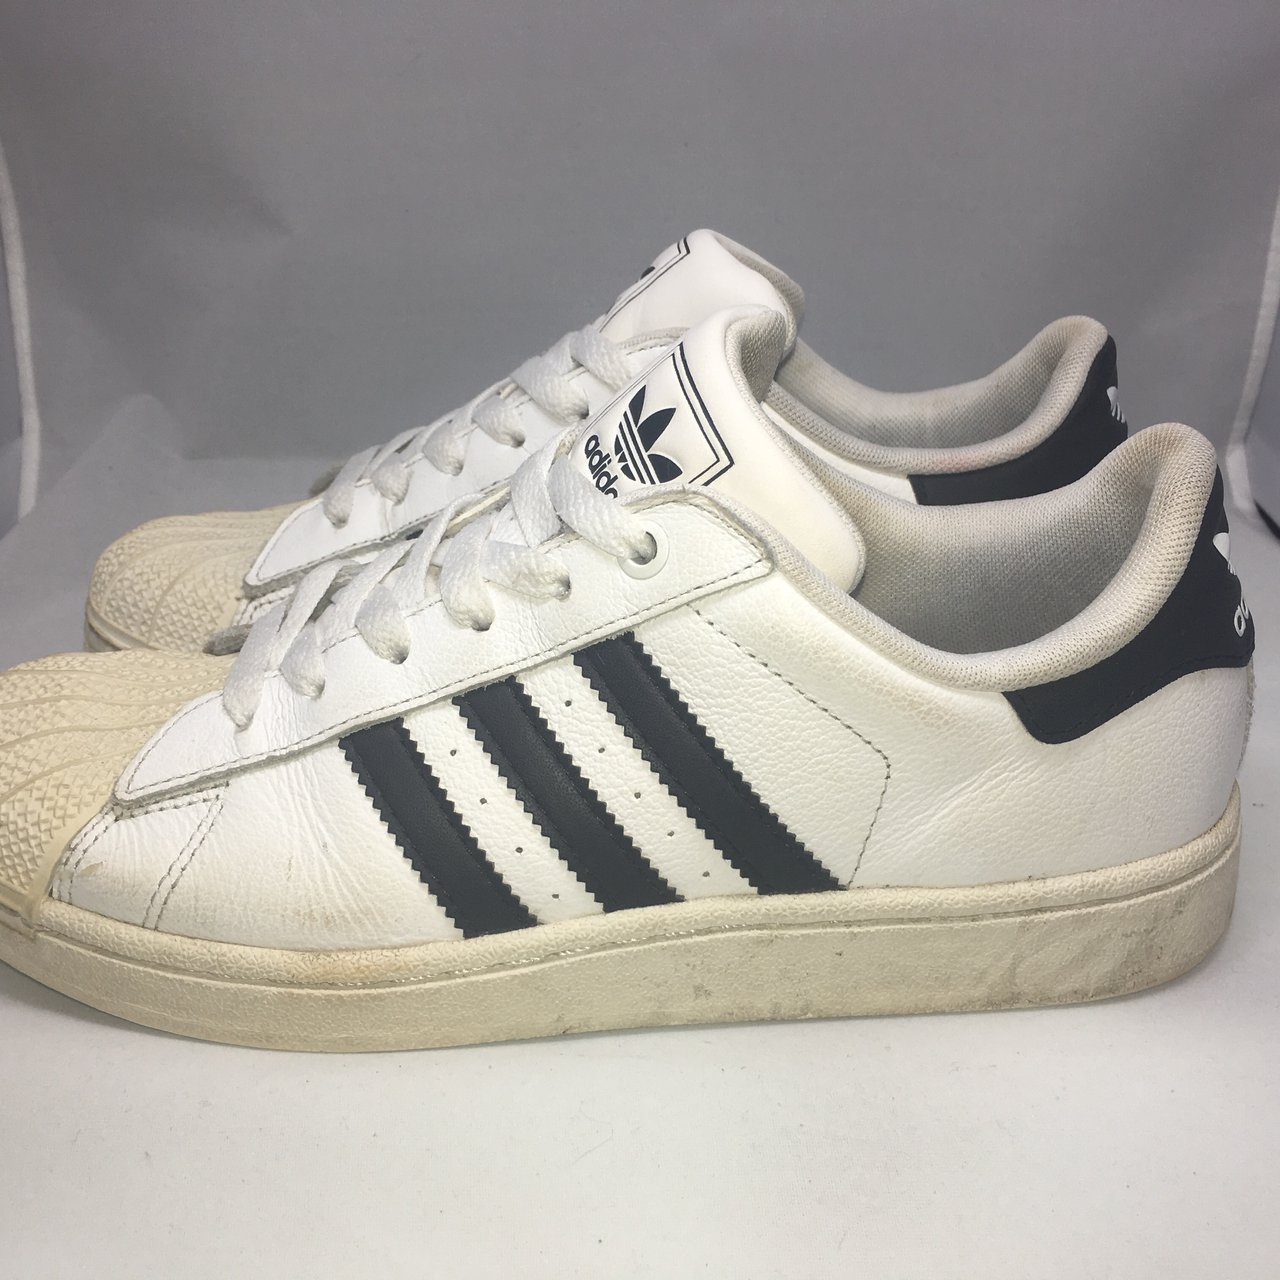 PreOwned Adidas Superstar 2 Black White Leather Kids Size 5 - Depop 918912d2bfd2